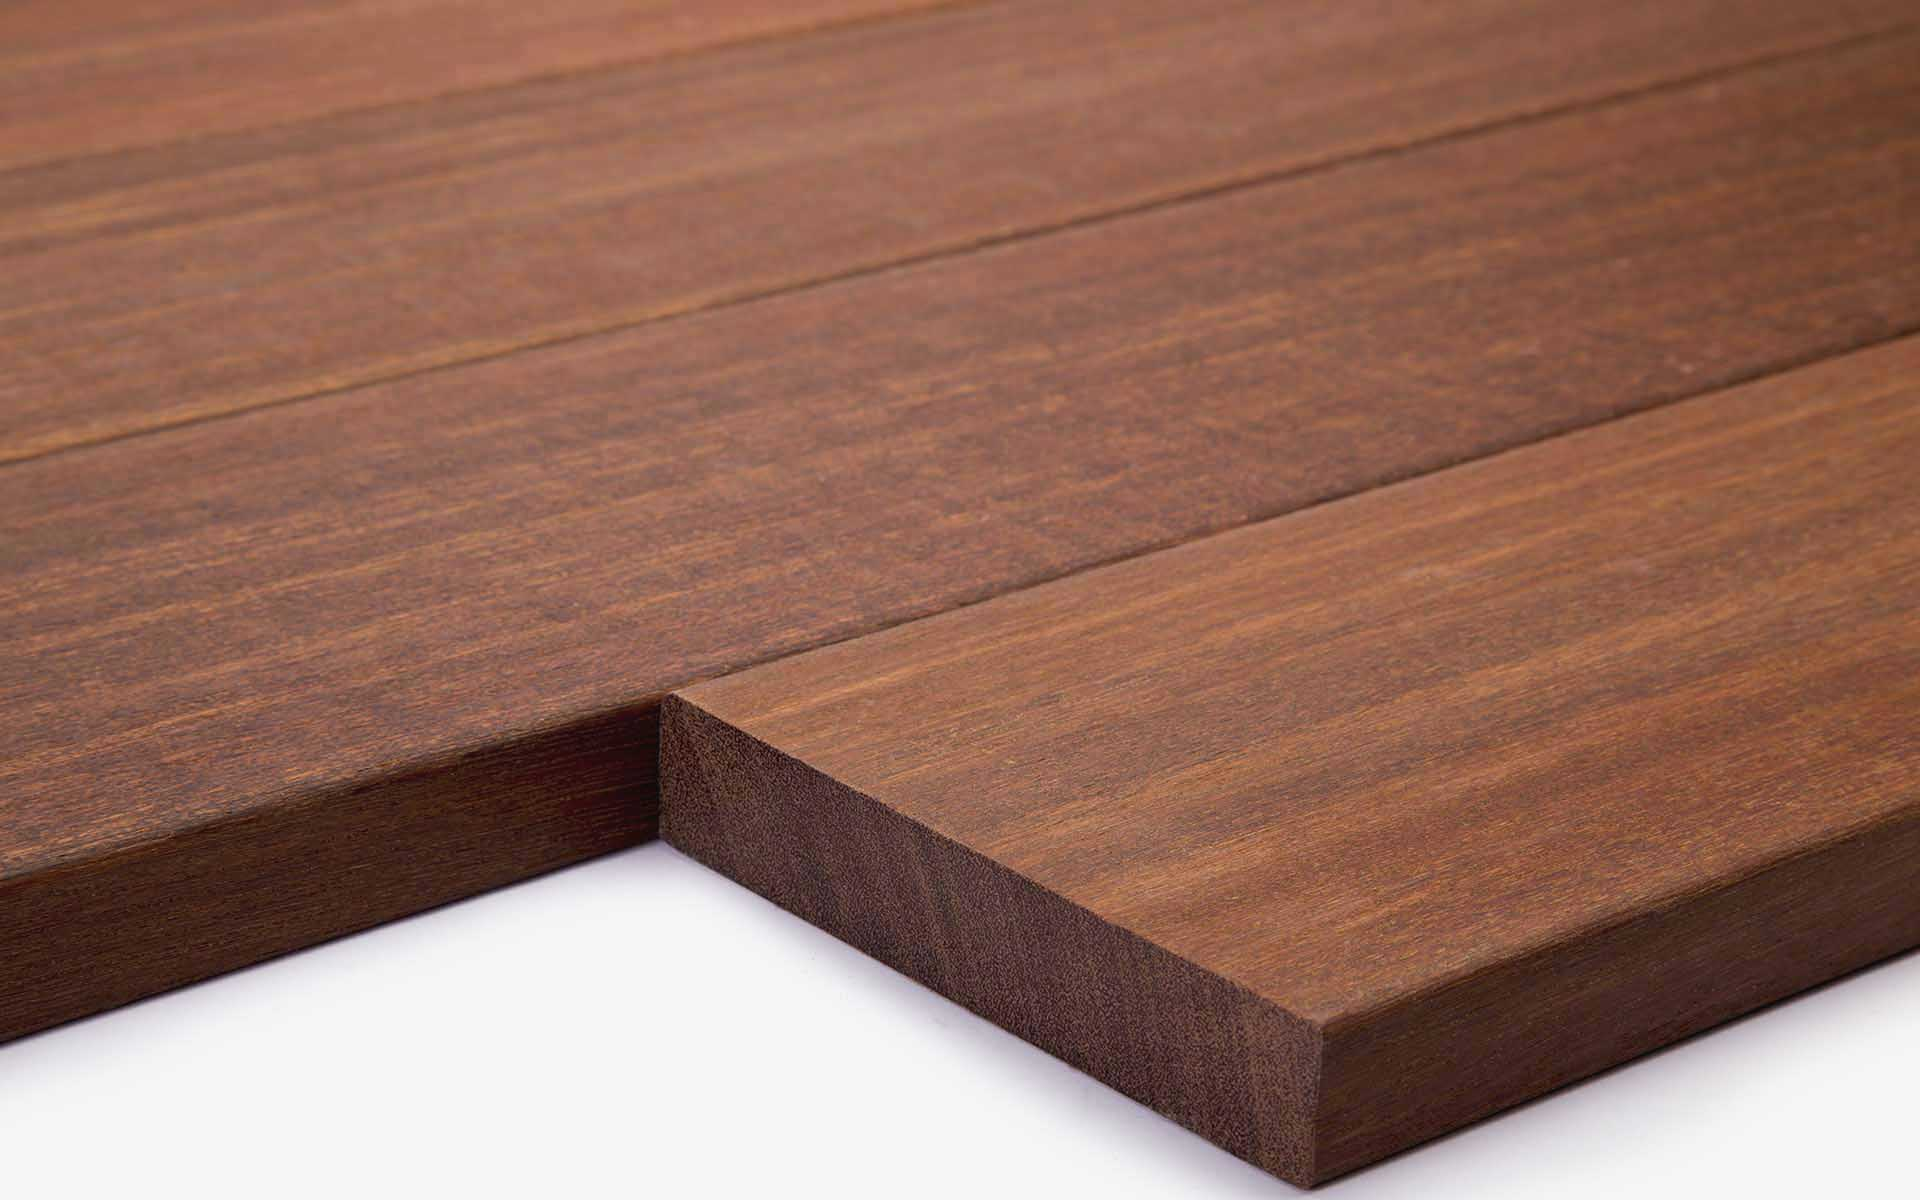 08. Batu_Hardwood_Decking_CloseUp_54x6_A_Boards_NovaUSAWood.jpg